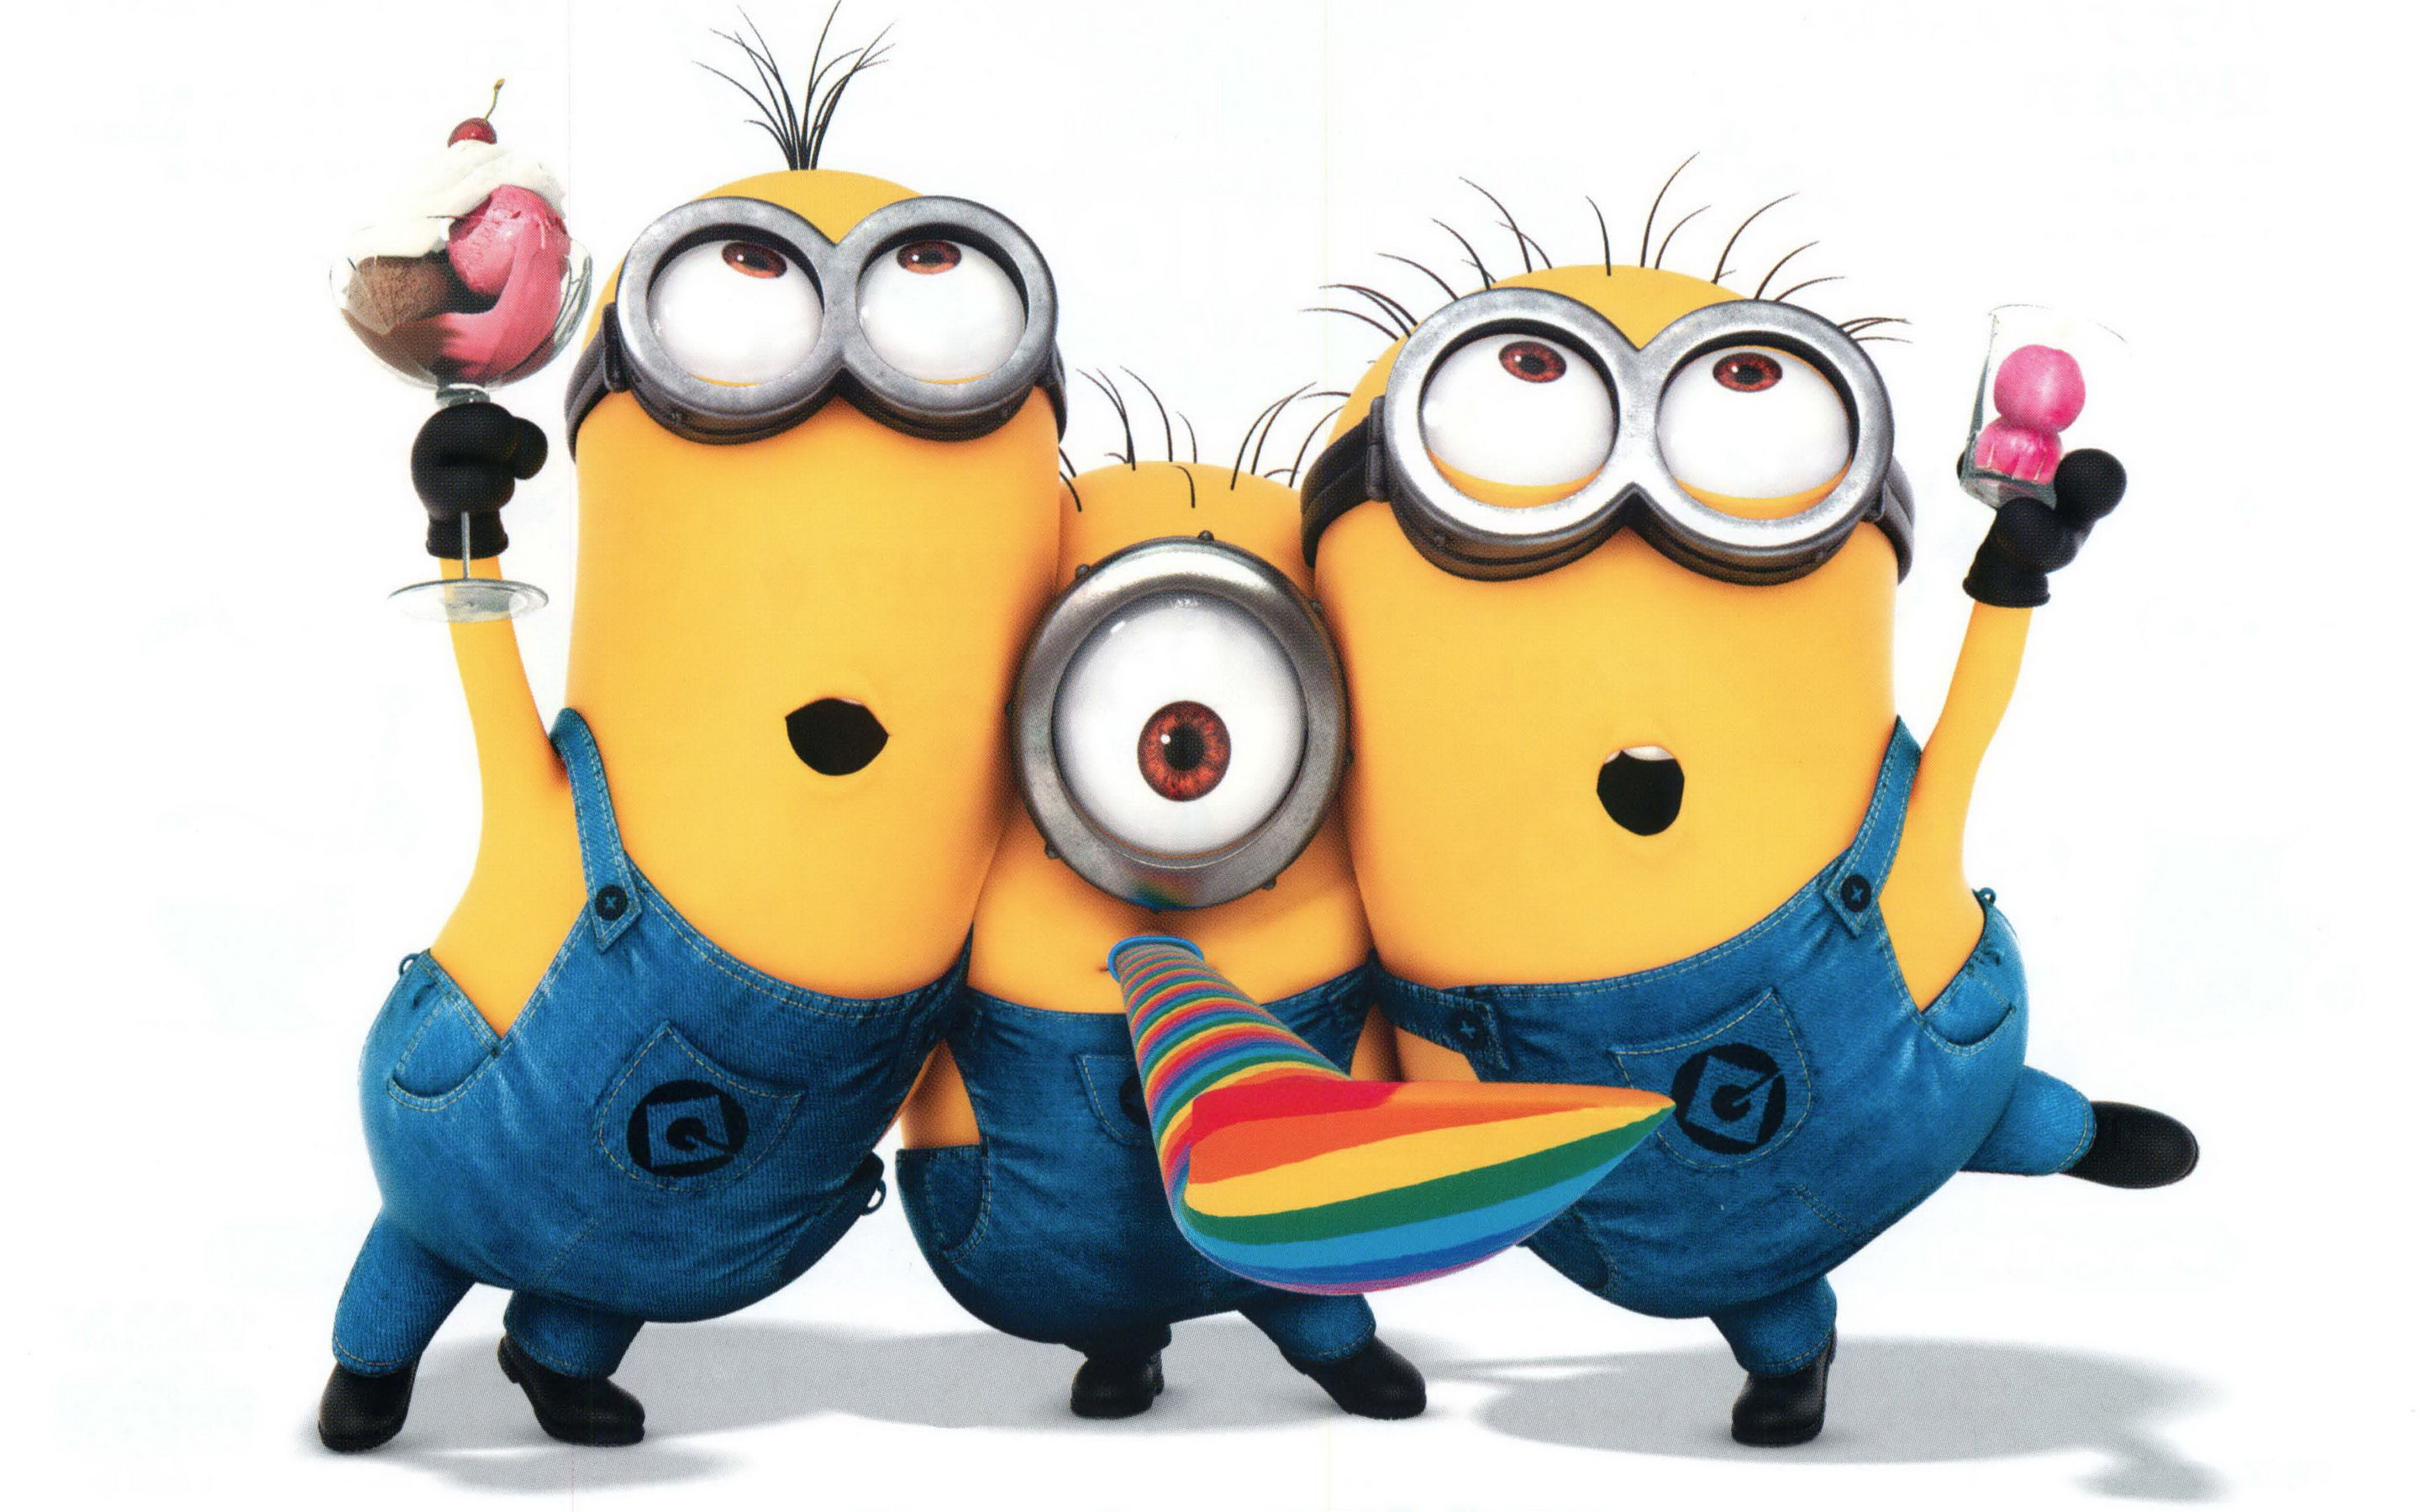 Despicable me 2 minions-wide.jpg